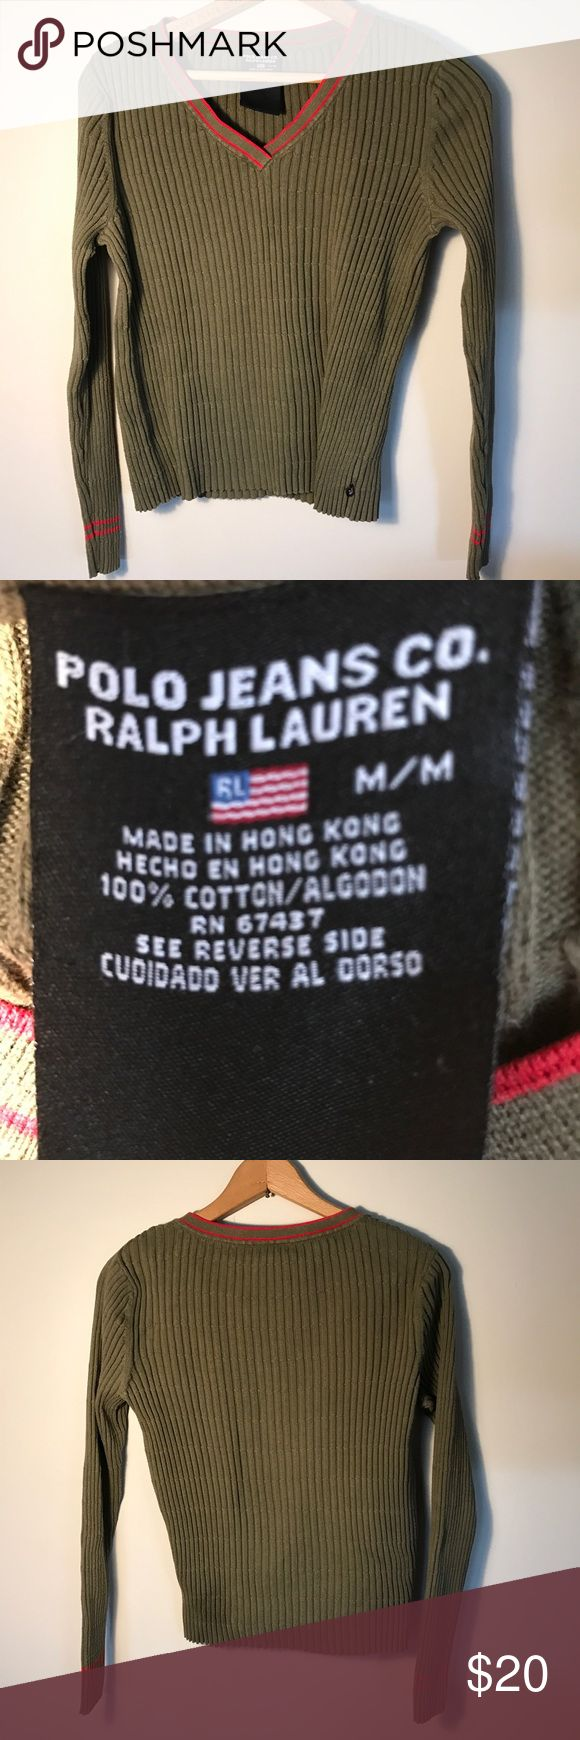 Polo Jeans Co. Ralph Lauren sweater Dark green sweater with red trim.  100% cotton. A god quality made sweater. Gently used , in great shape.  Zoom in to see the textured knit. Polo Jeans Co. Ralph Lauren  Sweaters